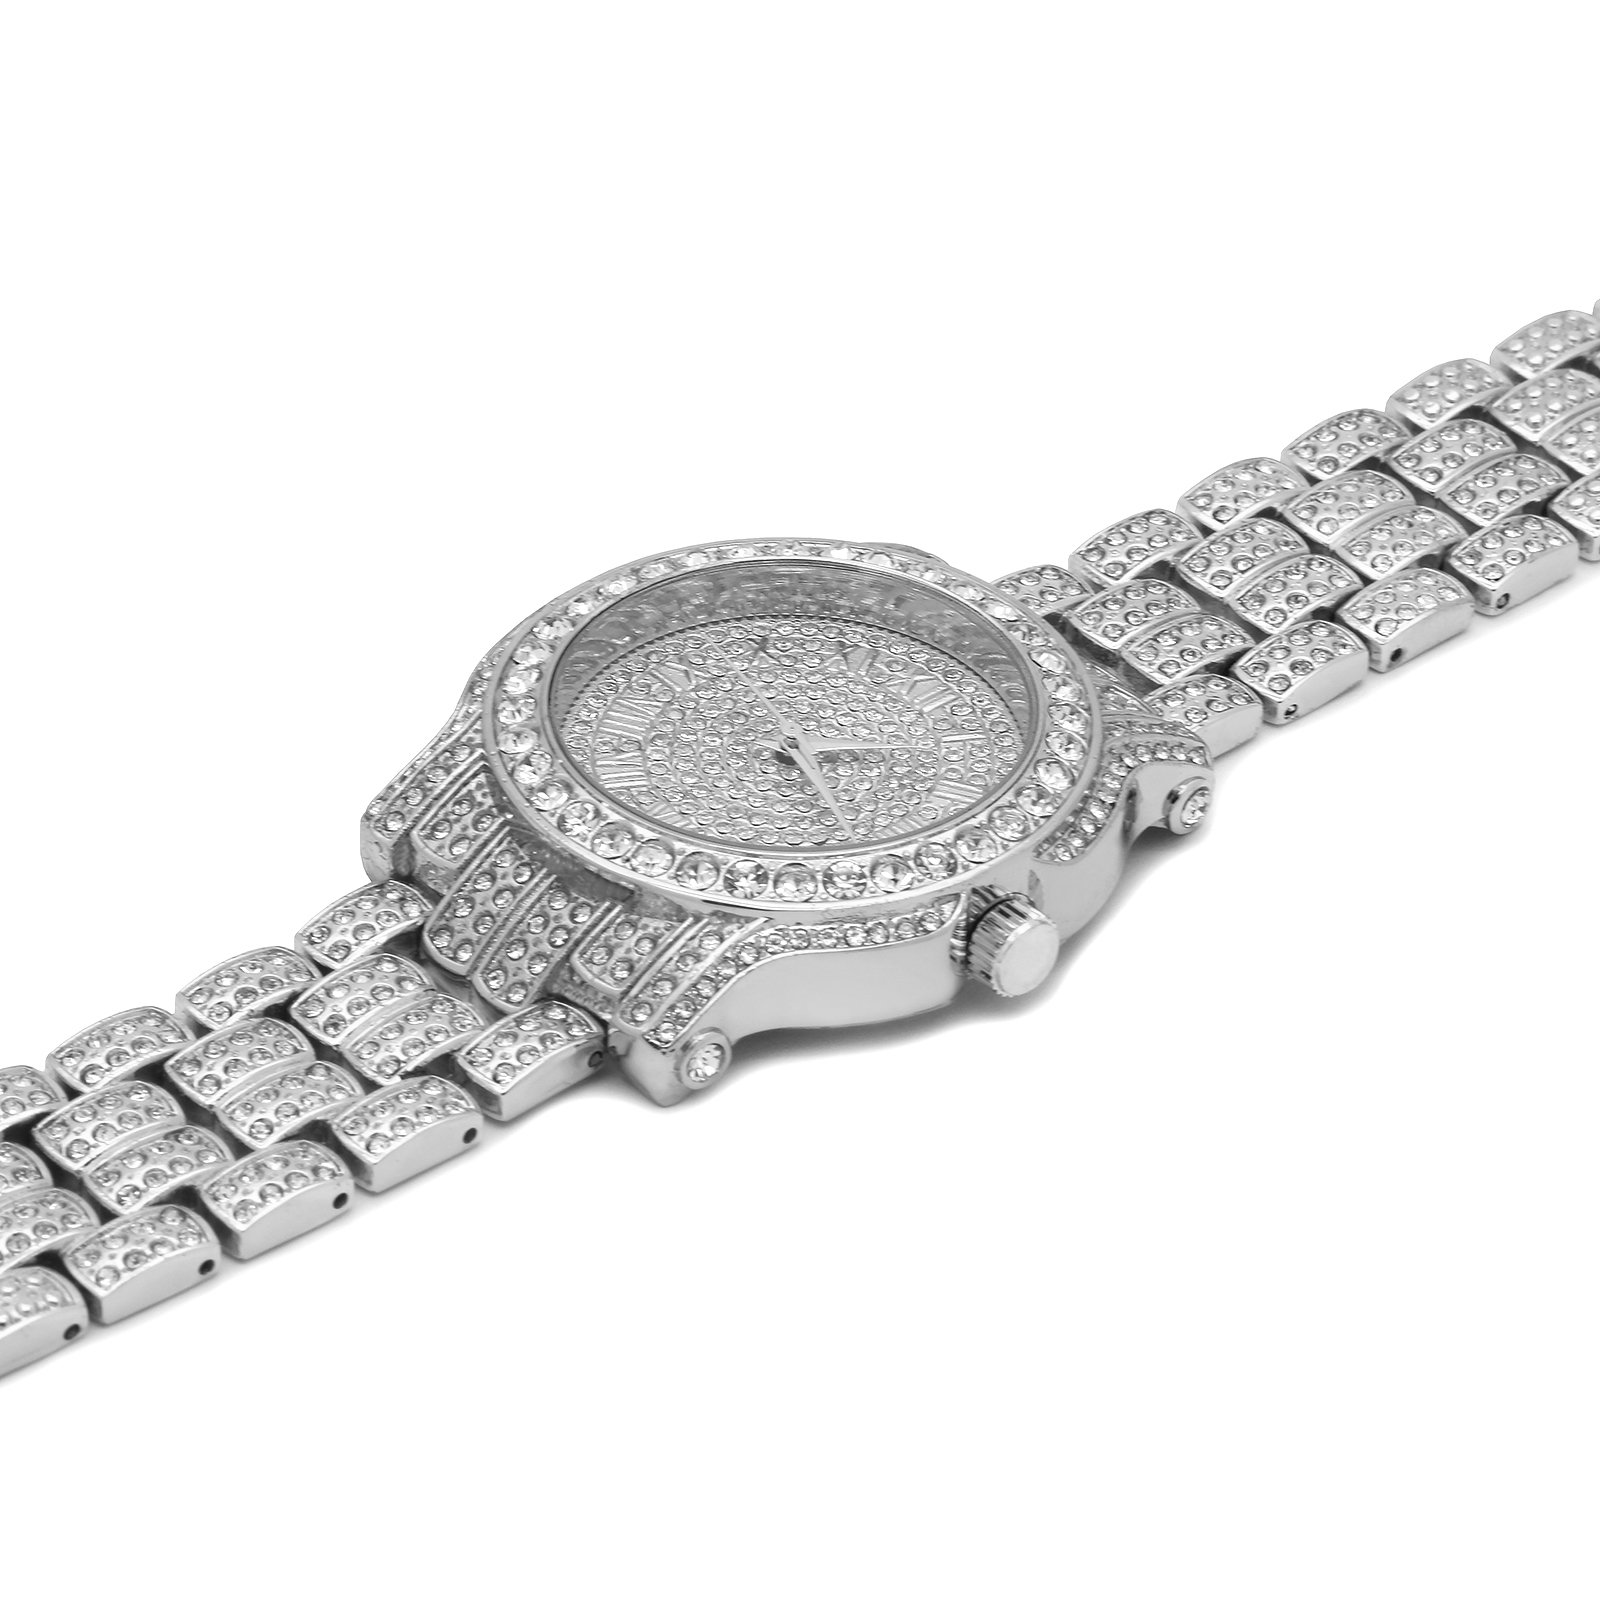 Iced Out Pave Silver Tone Hip Hop Men's Bling Bling Silver Metal Band Watch Watches by Technoking (Image #2)